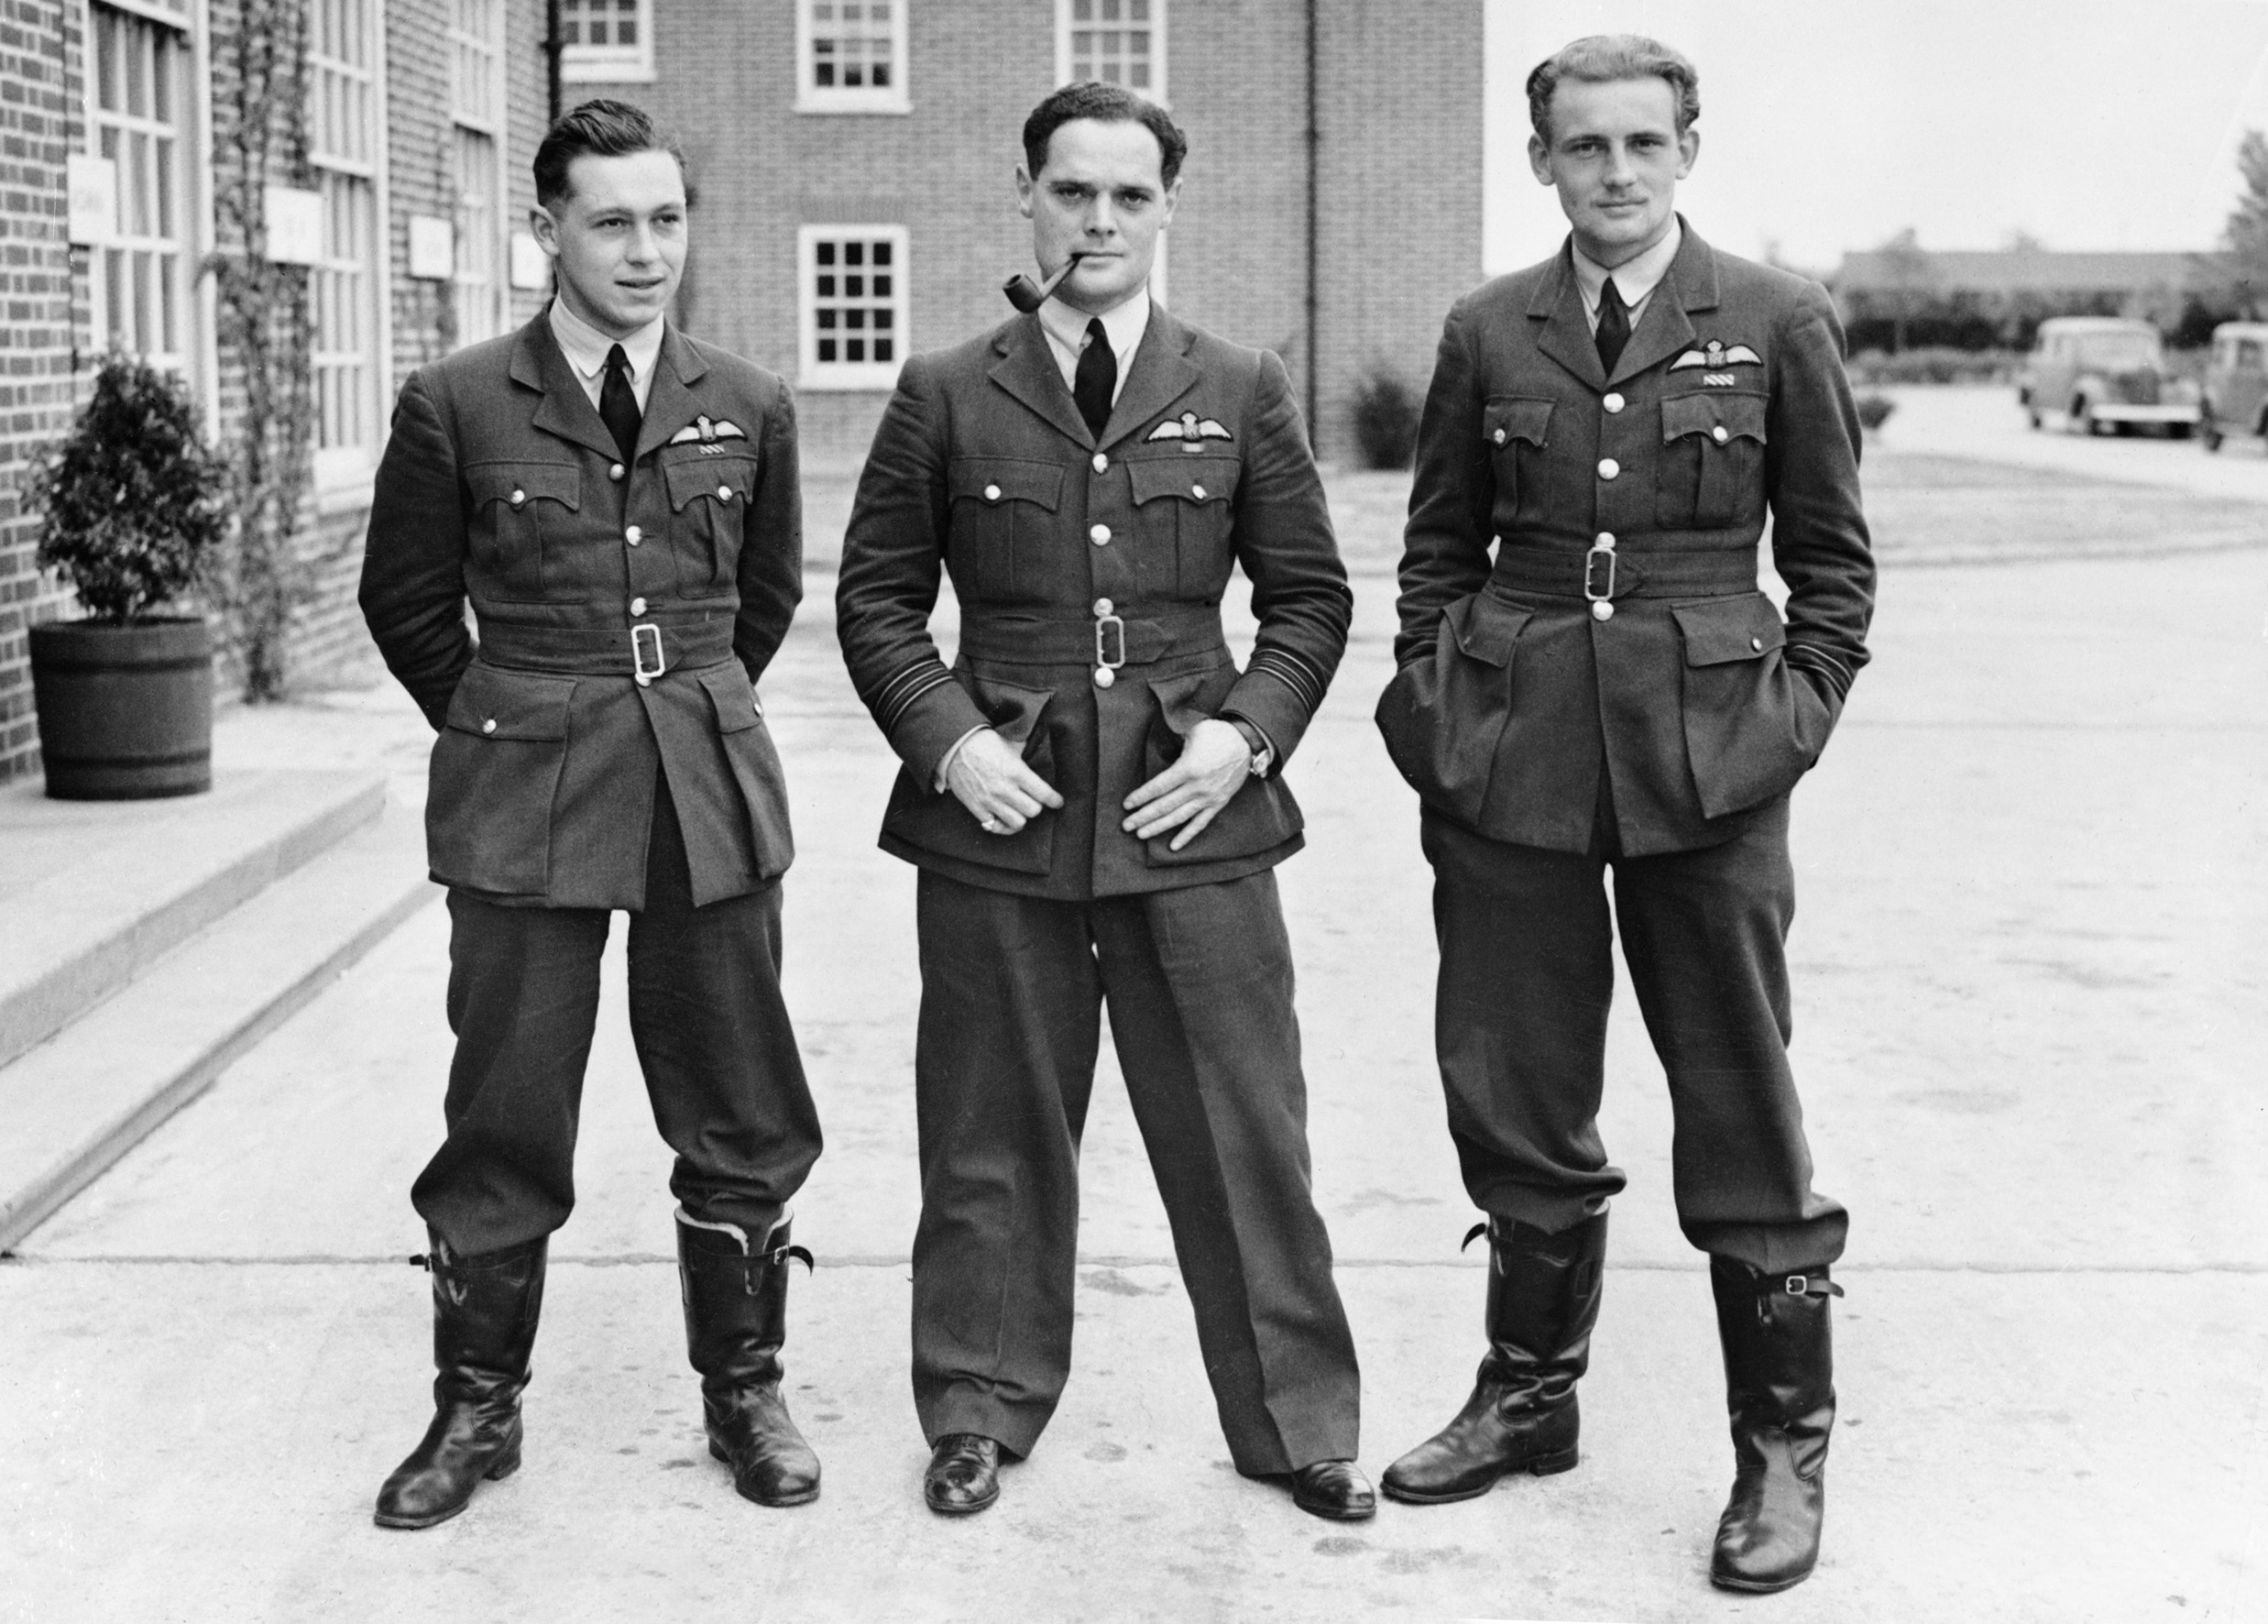 Pilot Officer William McKnight (left), Squadron Leader Douglas Bader (centre) and Flight Lieutenant Eric Bal.